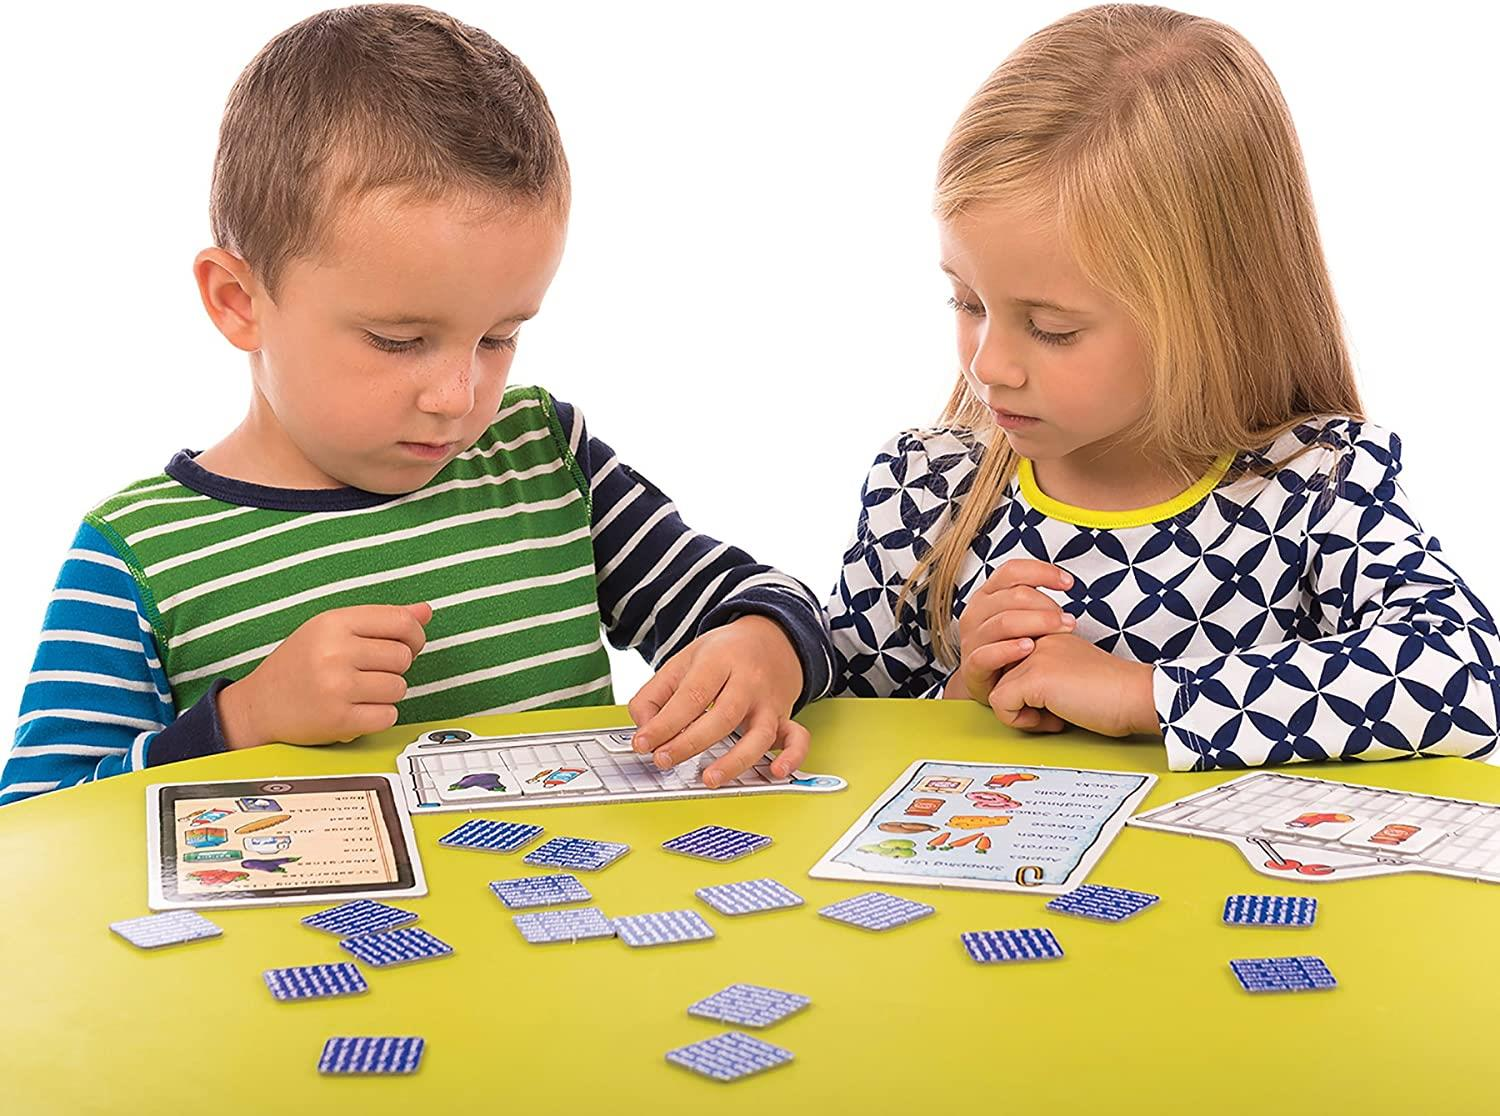 thumbnail 260 - Orchard Toys Educational Games For Kids Choose Game From Drop Down Menu